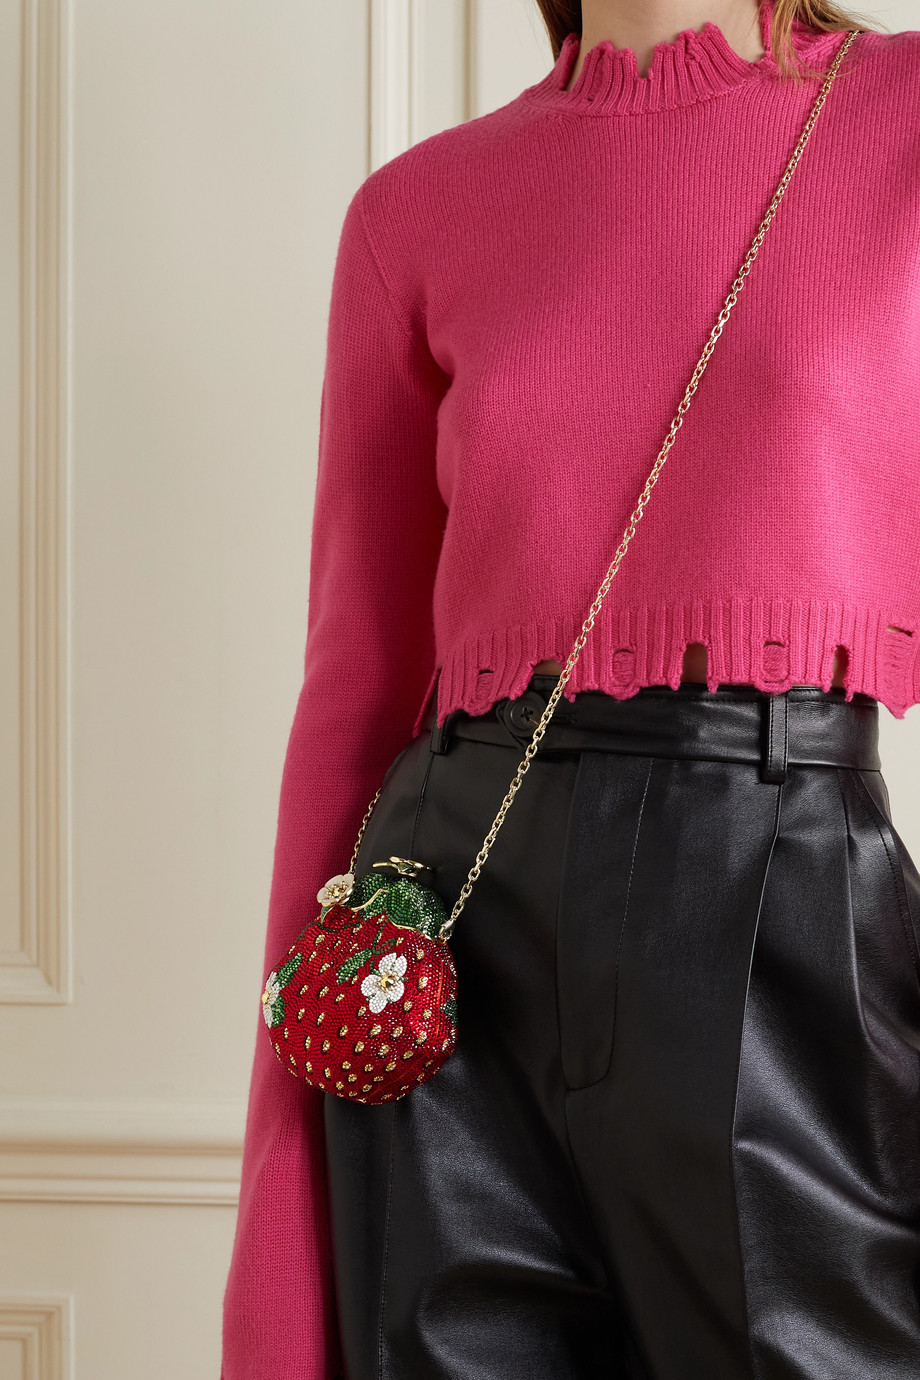 Judith Leiber Couture Strawberry crystal-embellished gold-tone clutch